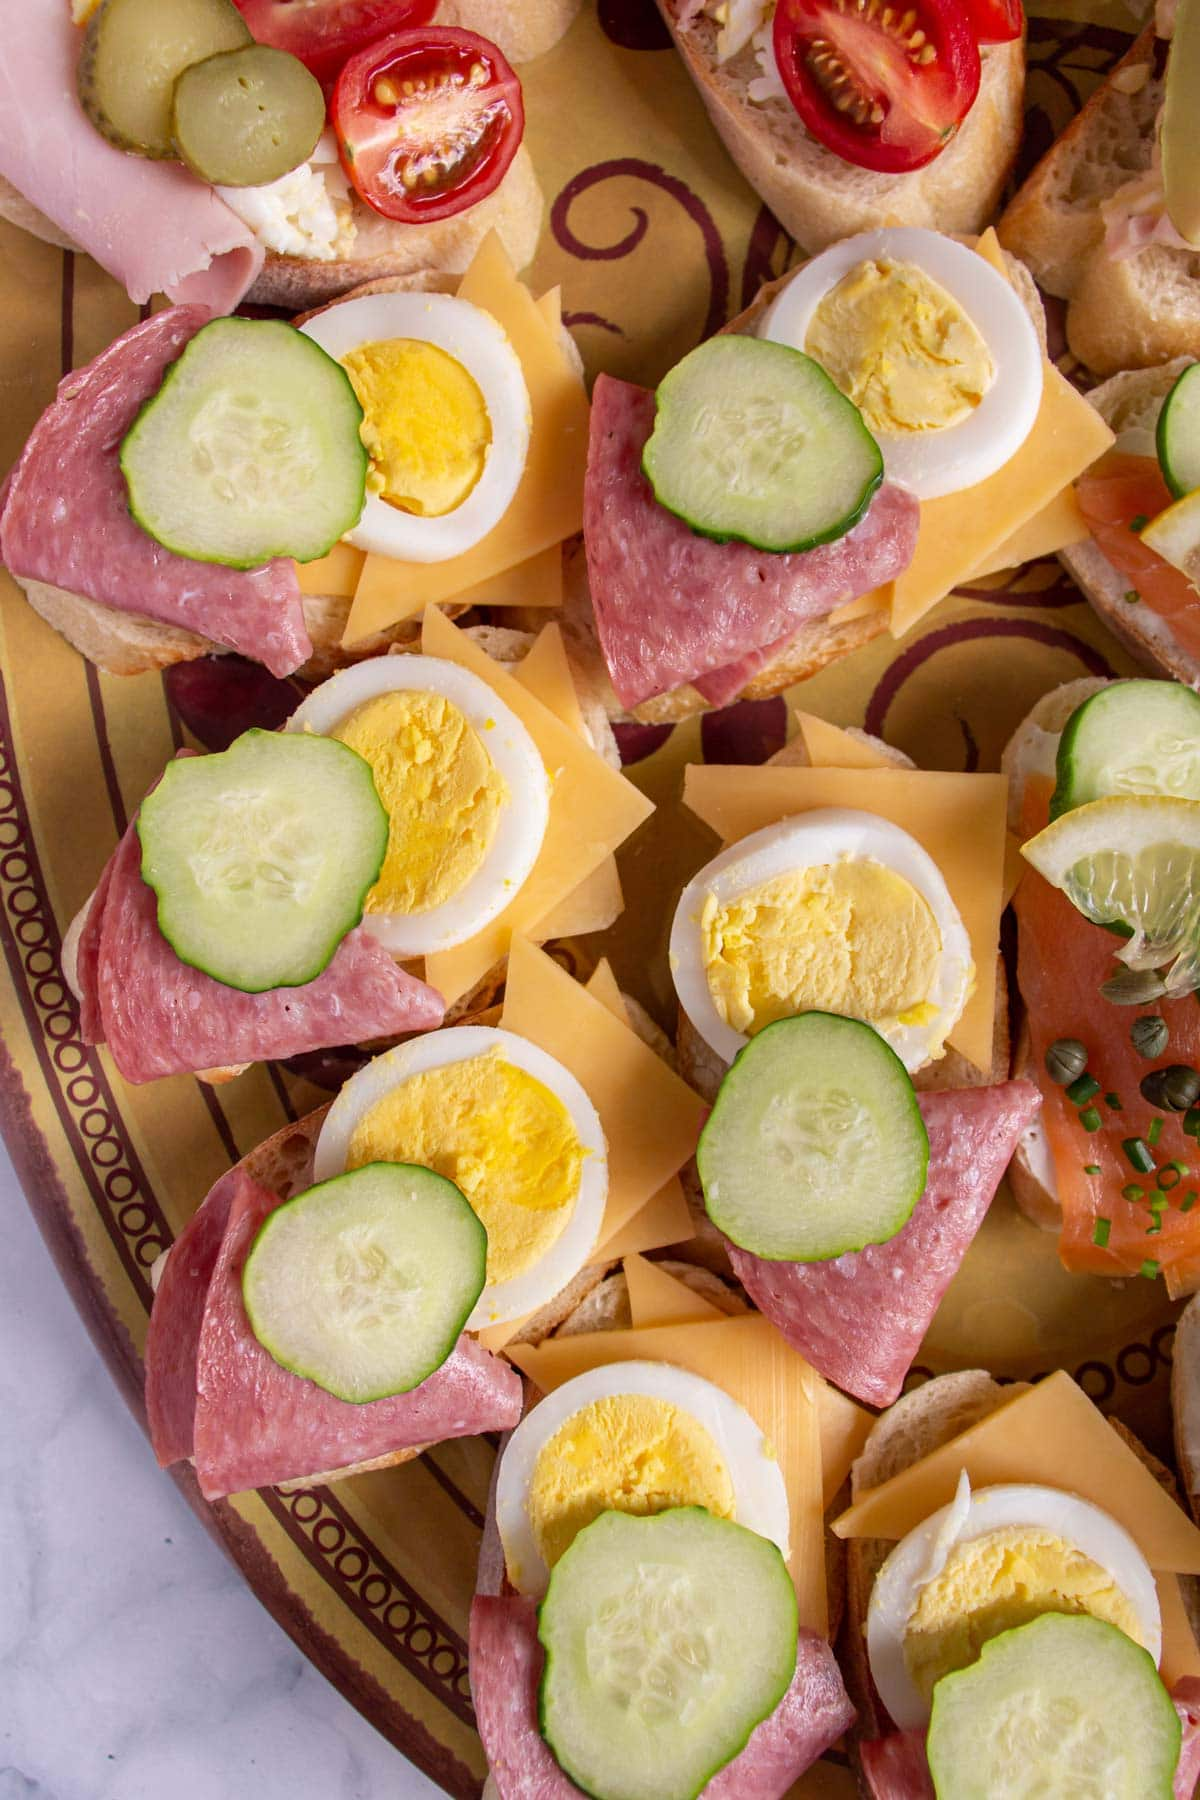 Open-faced sandwiches topped with salami, cheese, hard-boiled egg, and cucumber.